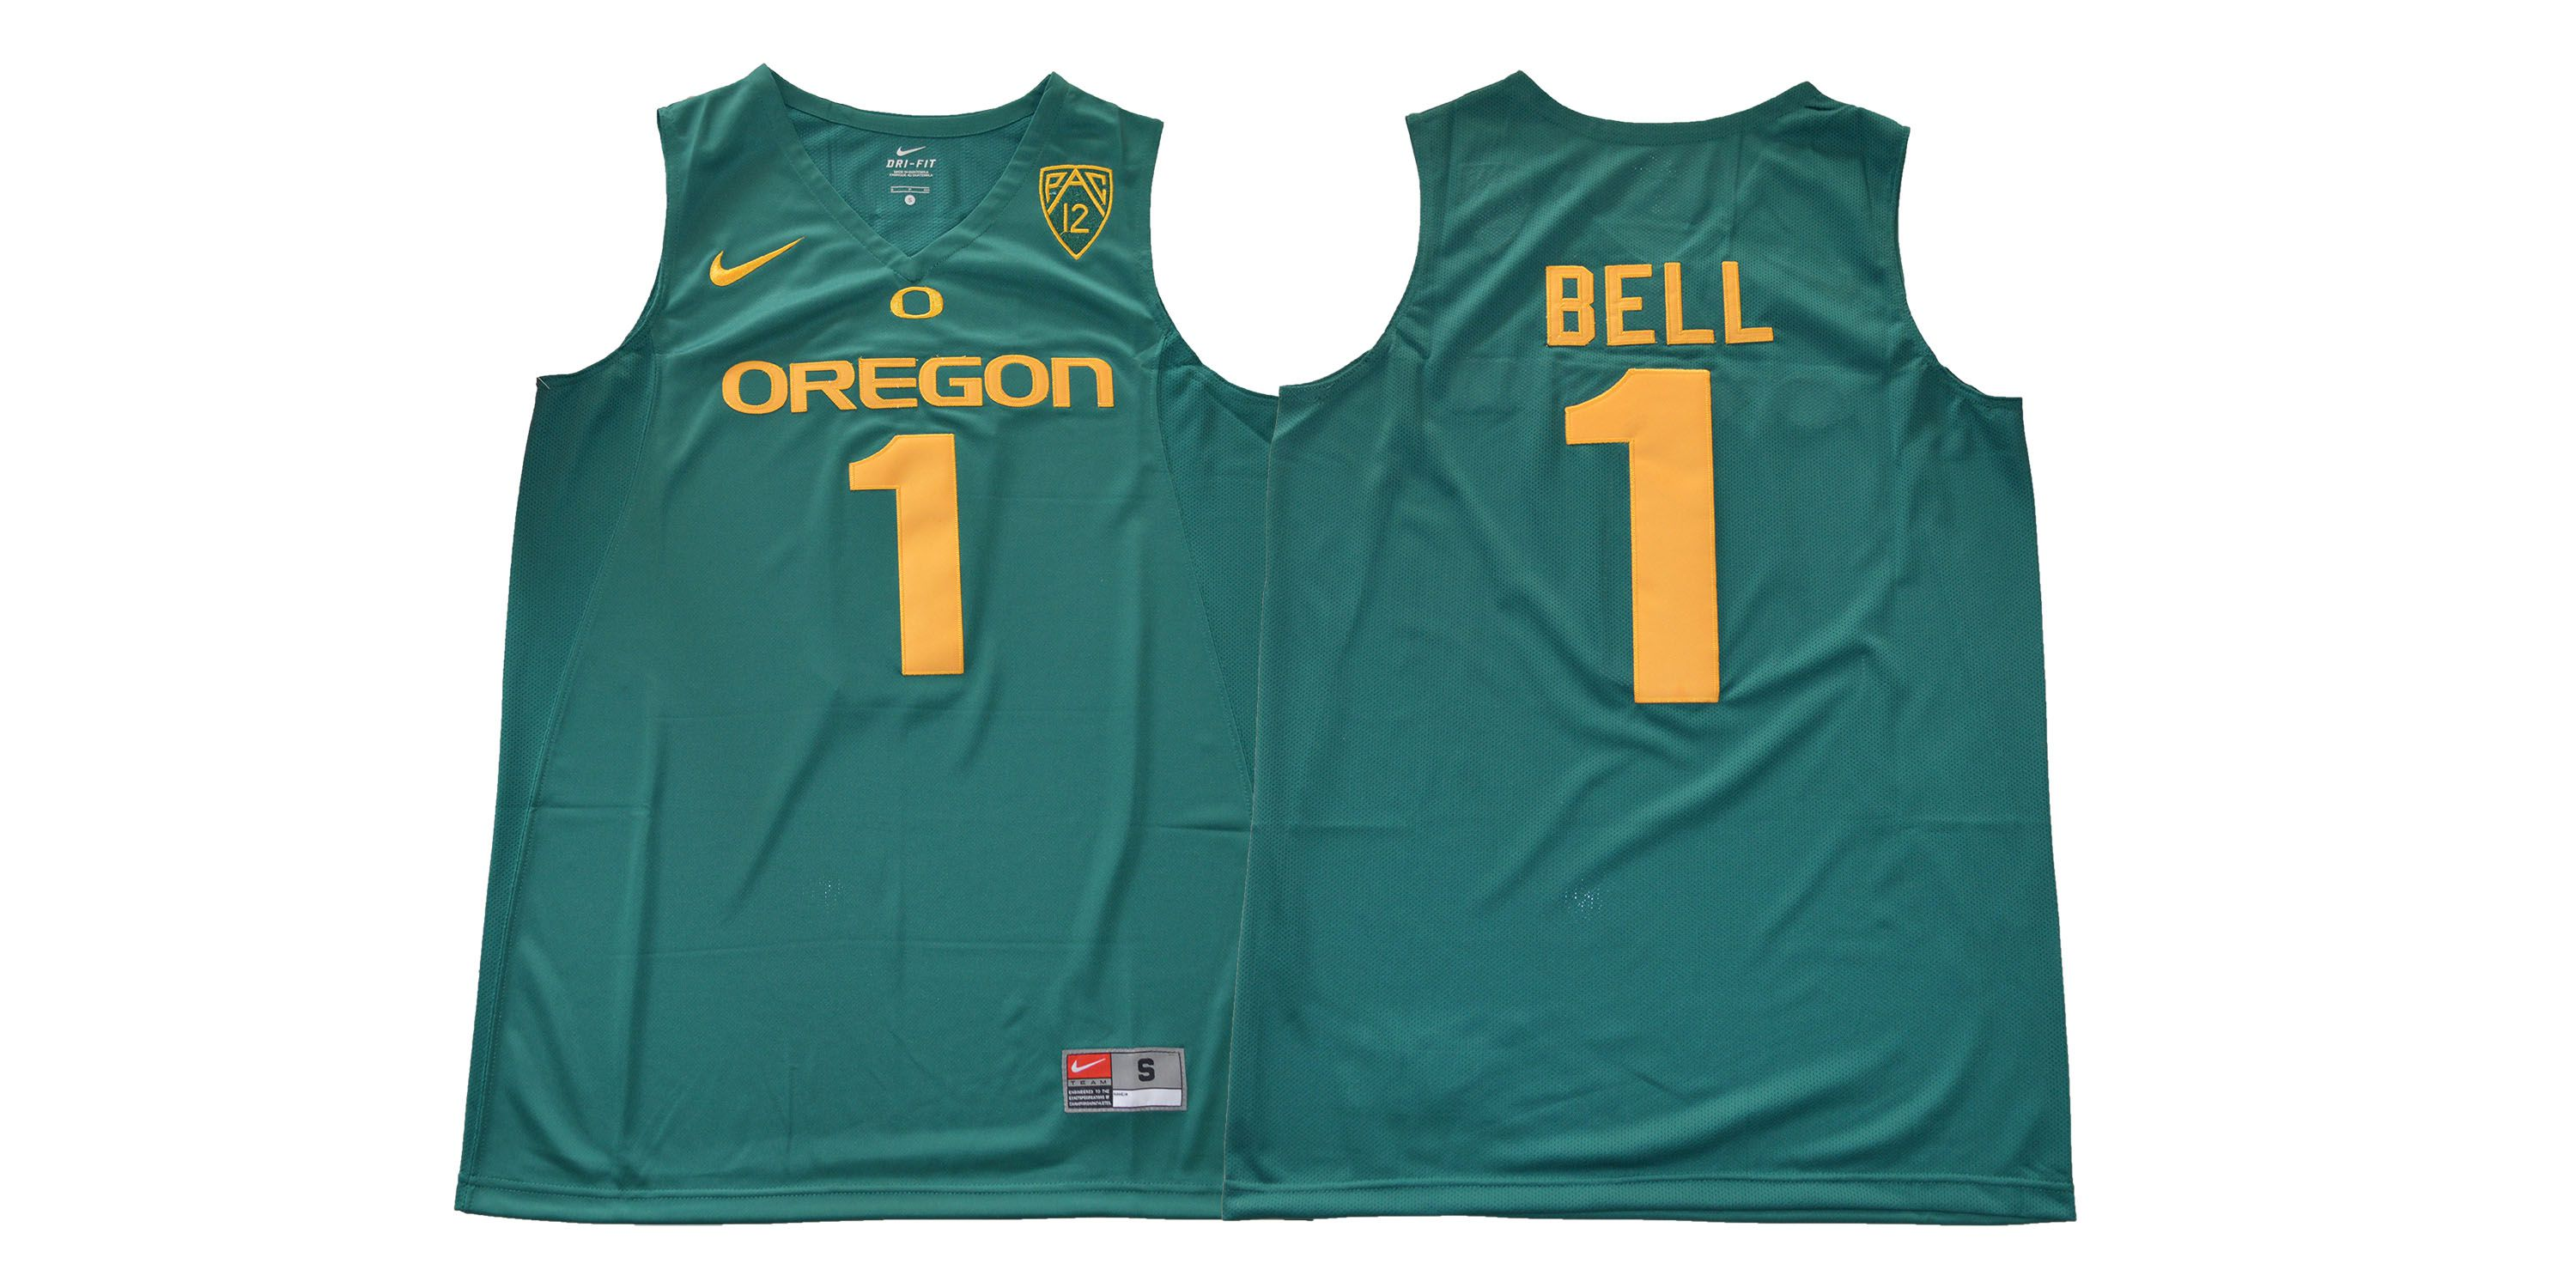 Men Oregon Ducks 1 Bell Green NCAA Jerseys1